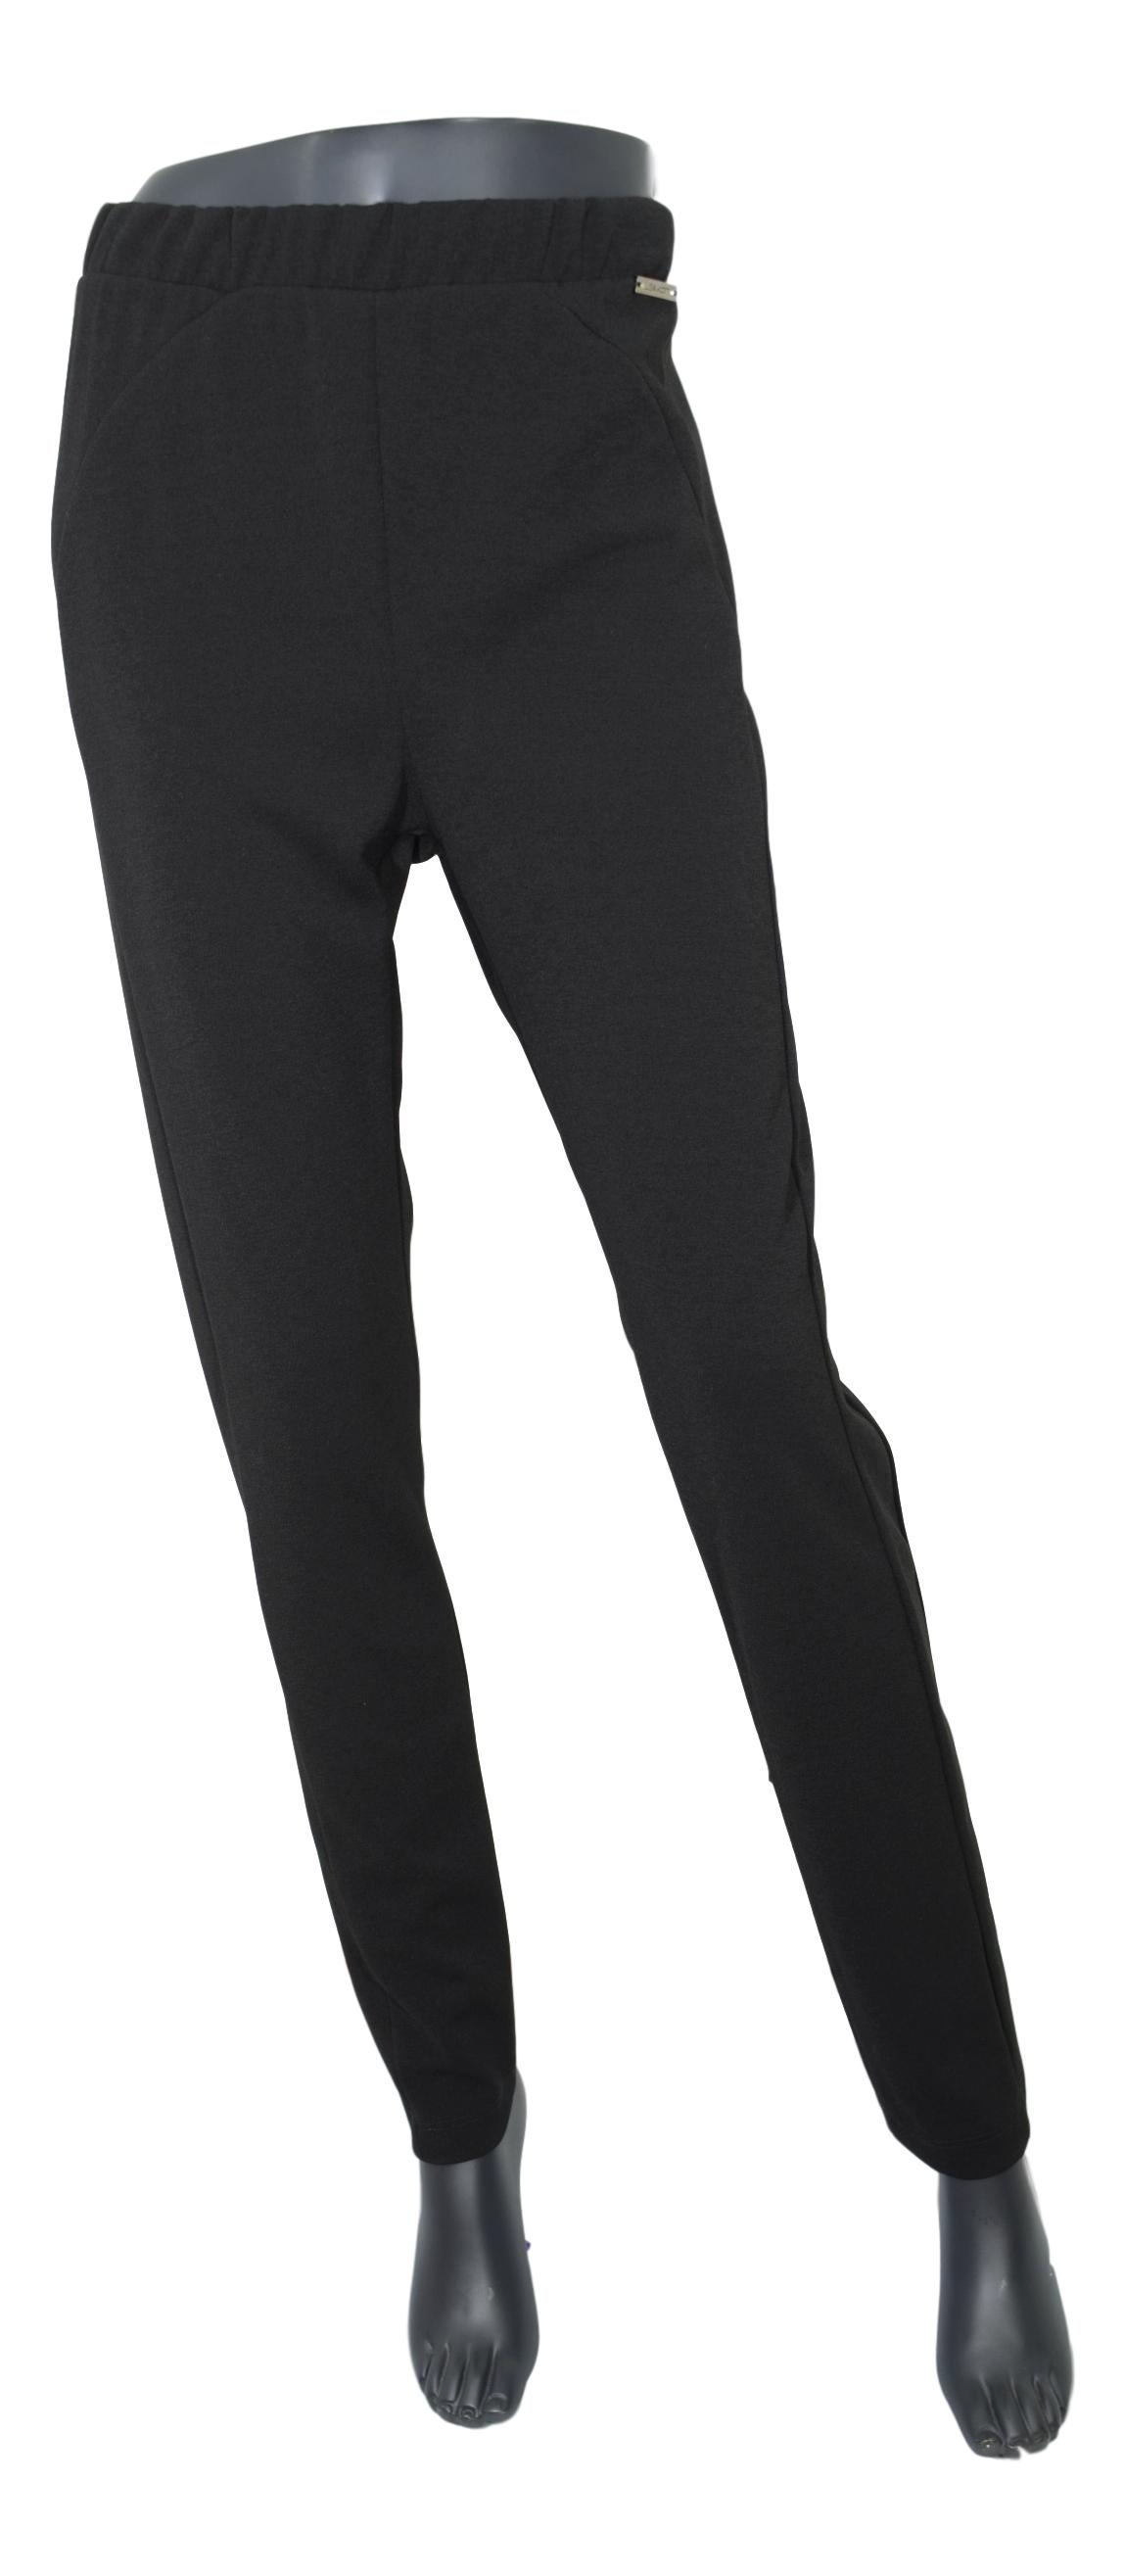 LISA KOTT PANTALONE DONNA CURVY STYLE 9P1012 COLORE NERO MADE IN ITALY